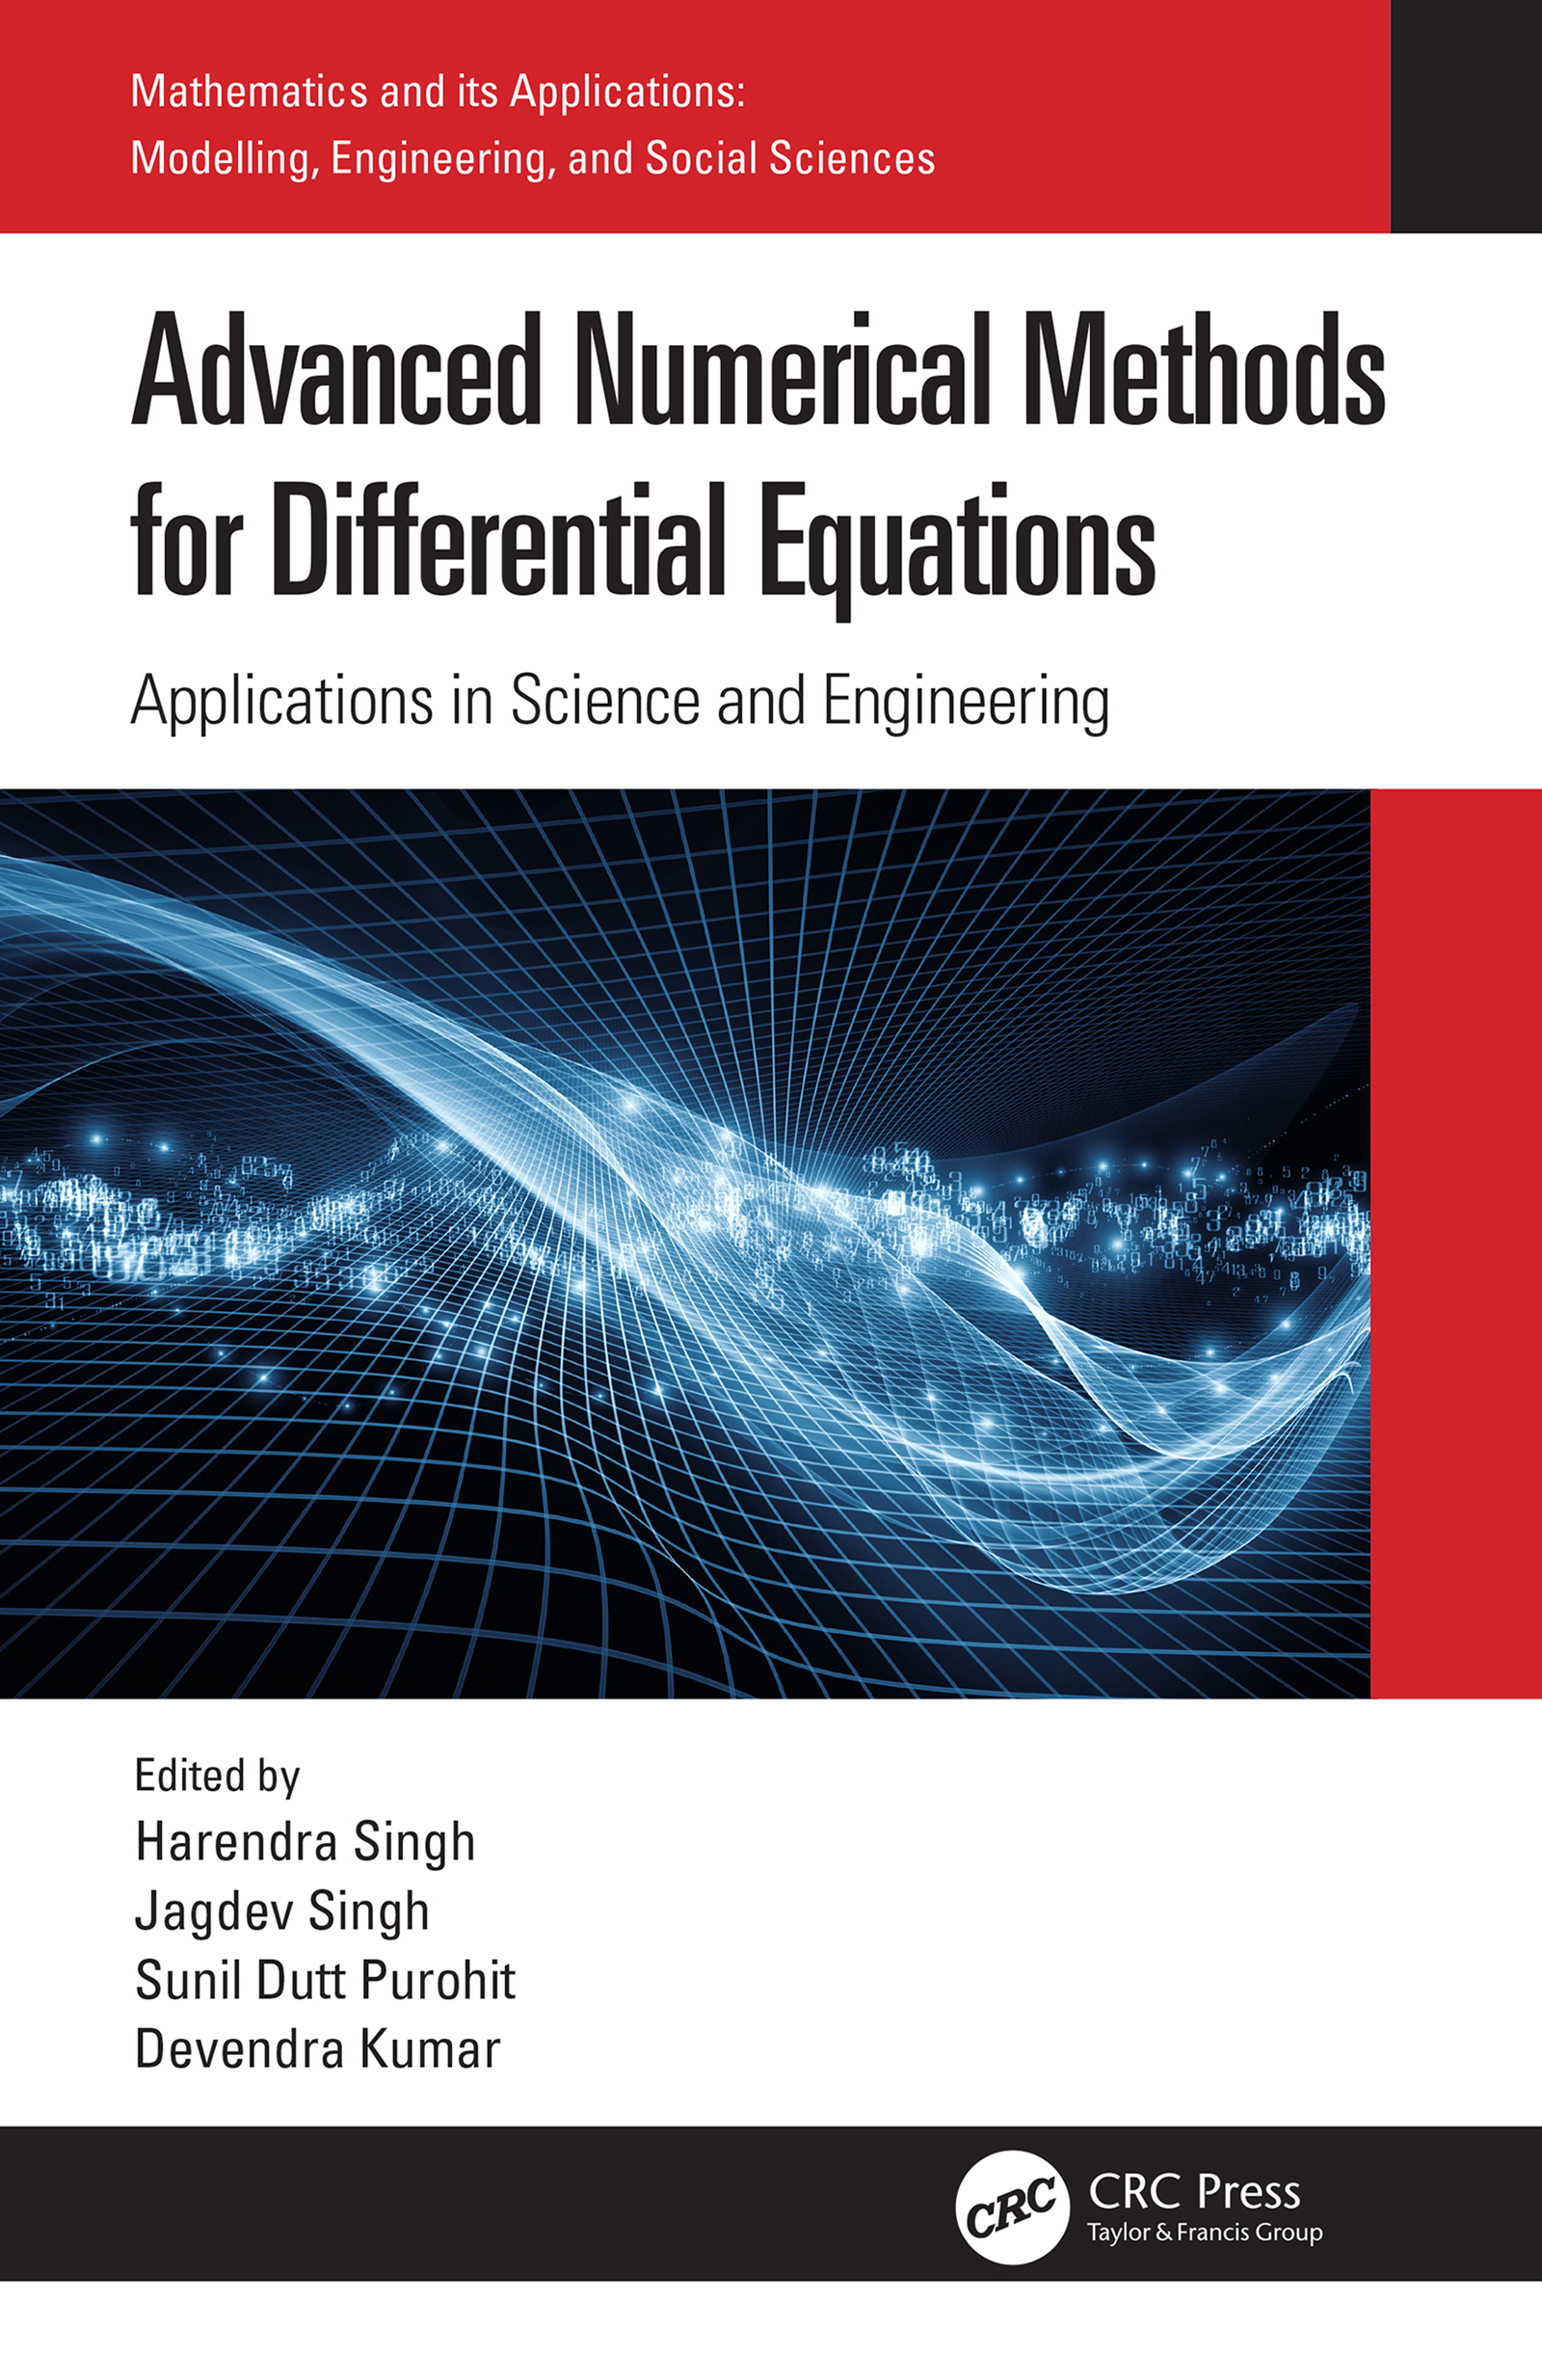 Solutions for Nonlinear Fractional Diffusion Equations with Reaction Terms